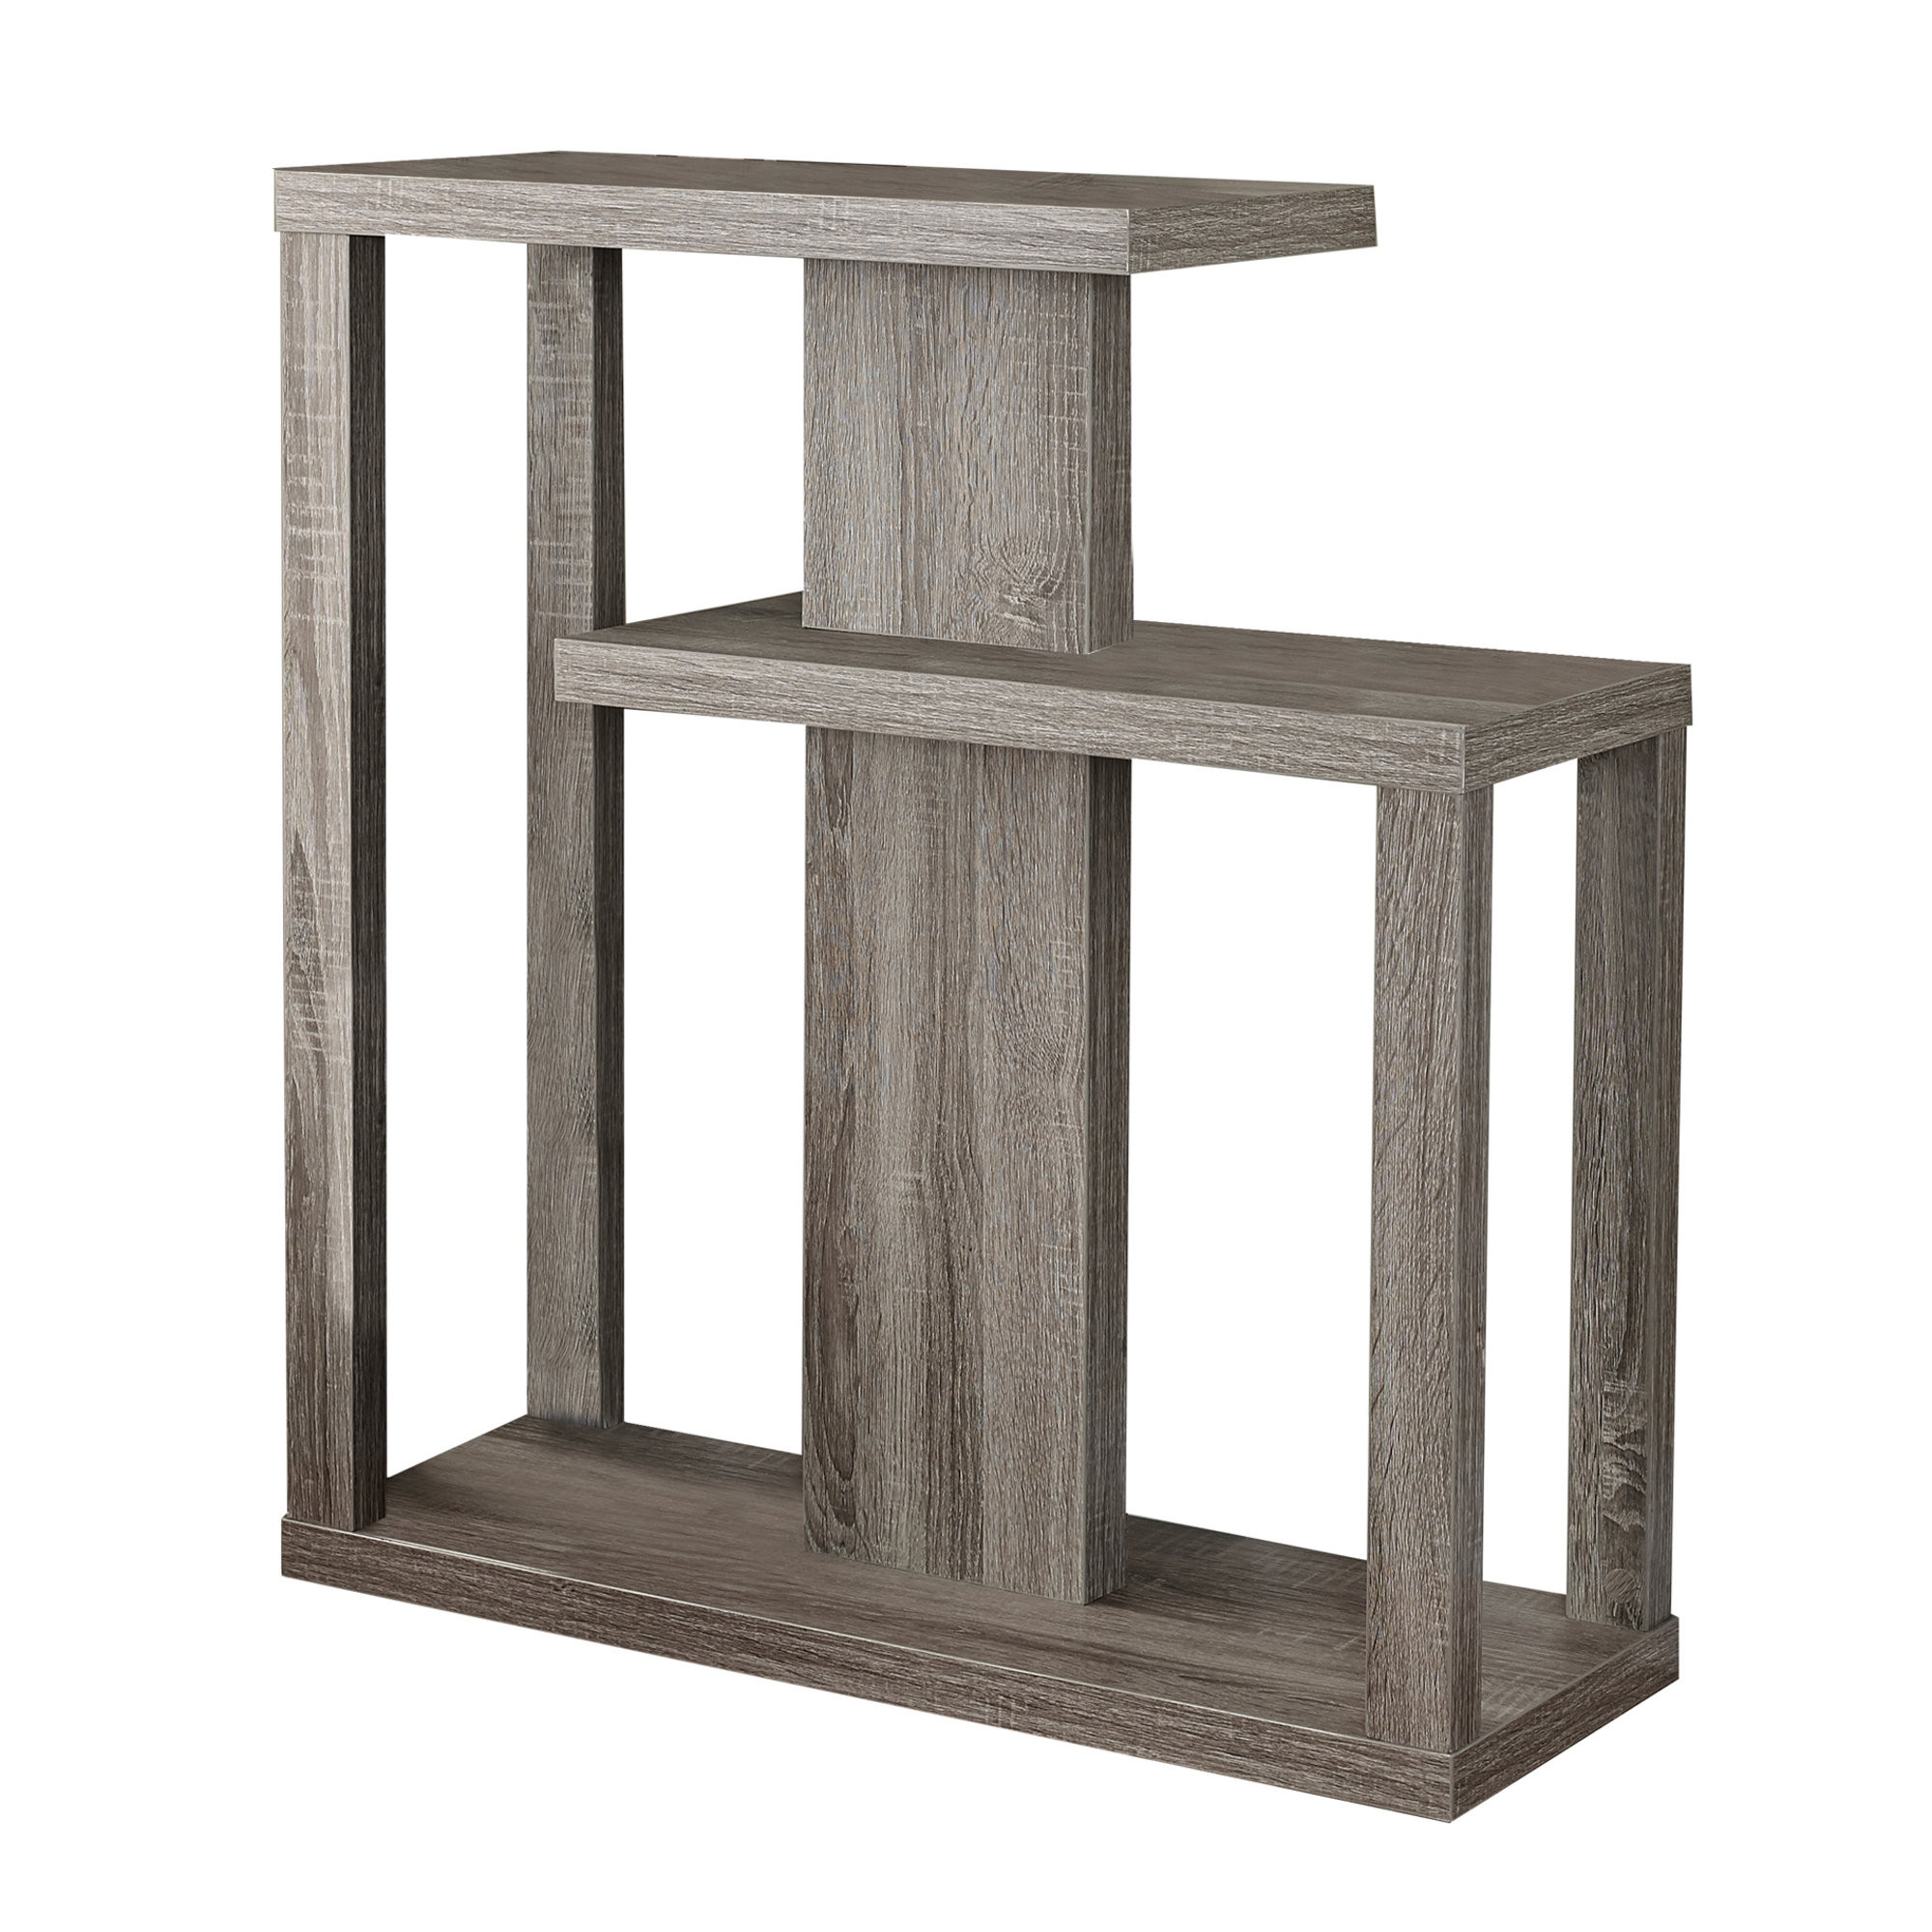 Details About Monarch Specialties I 2472 32 W Contemporary Hall Console Table Beige